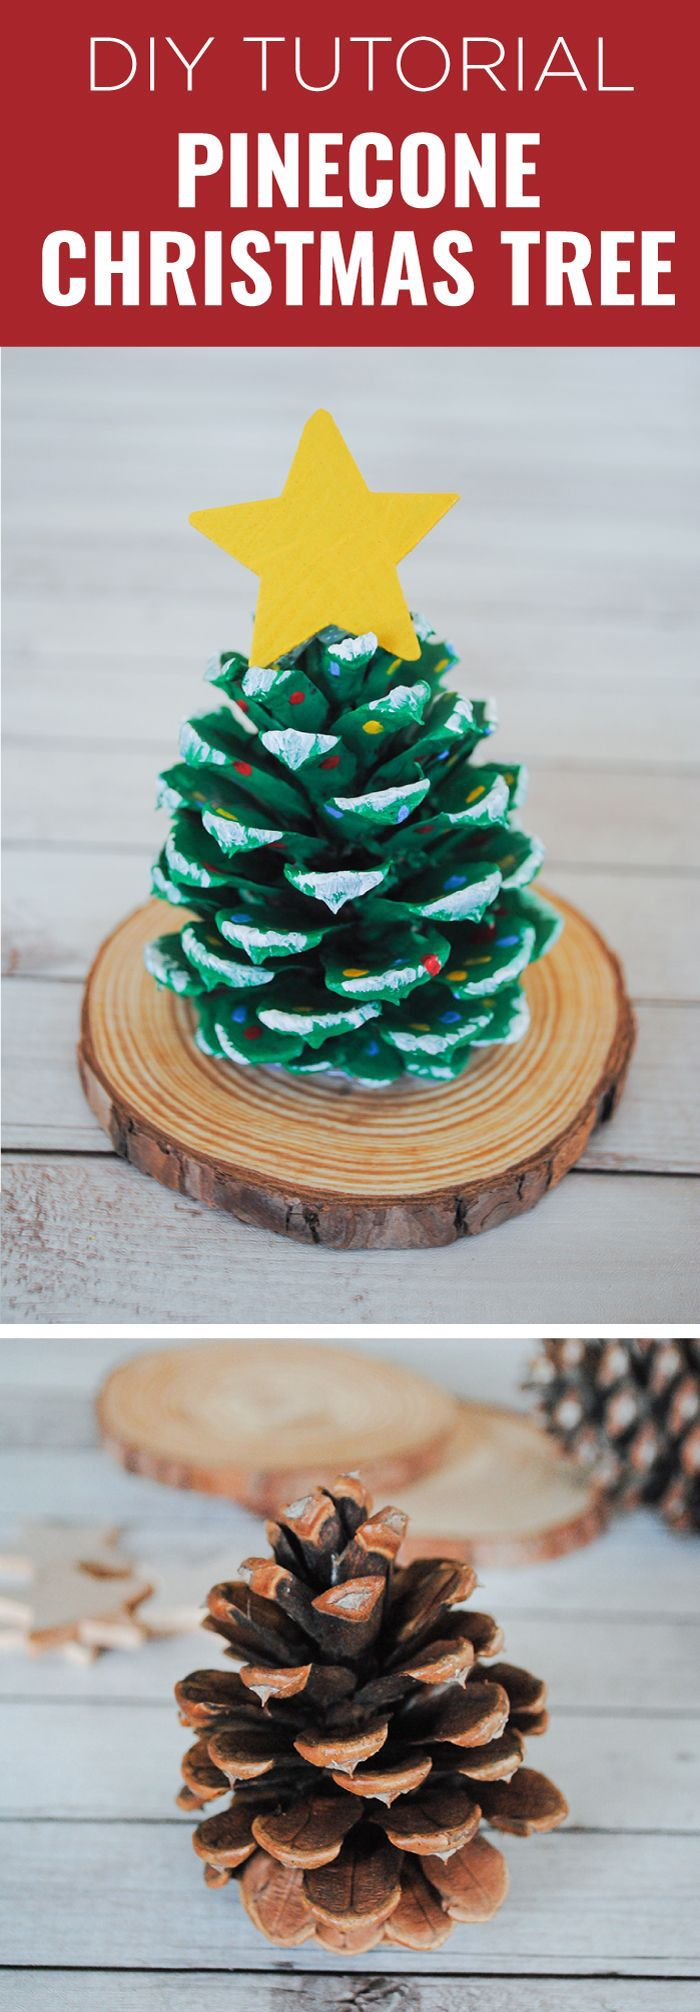 pinecone christmas tree, step by step diy tutorial, christmas arts and crafts, pinecone painted in green, placed on wooden log